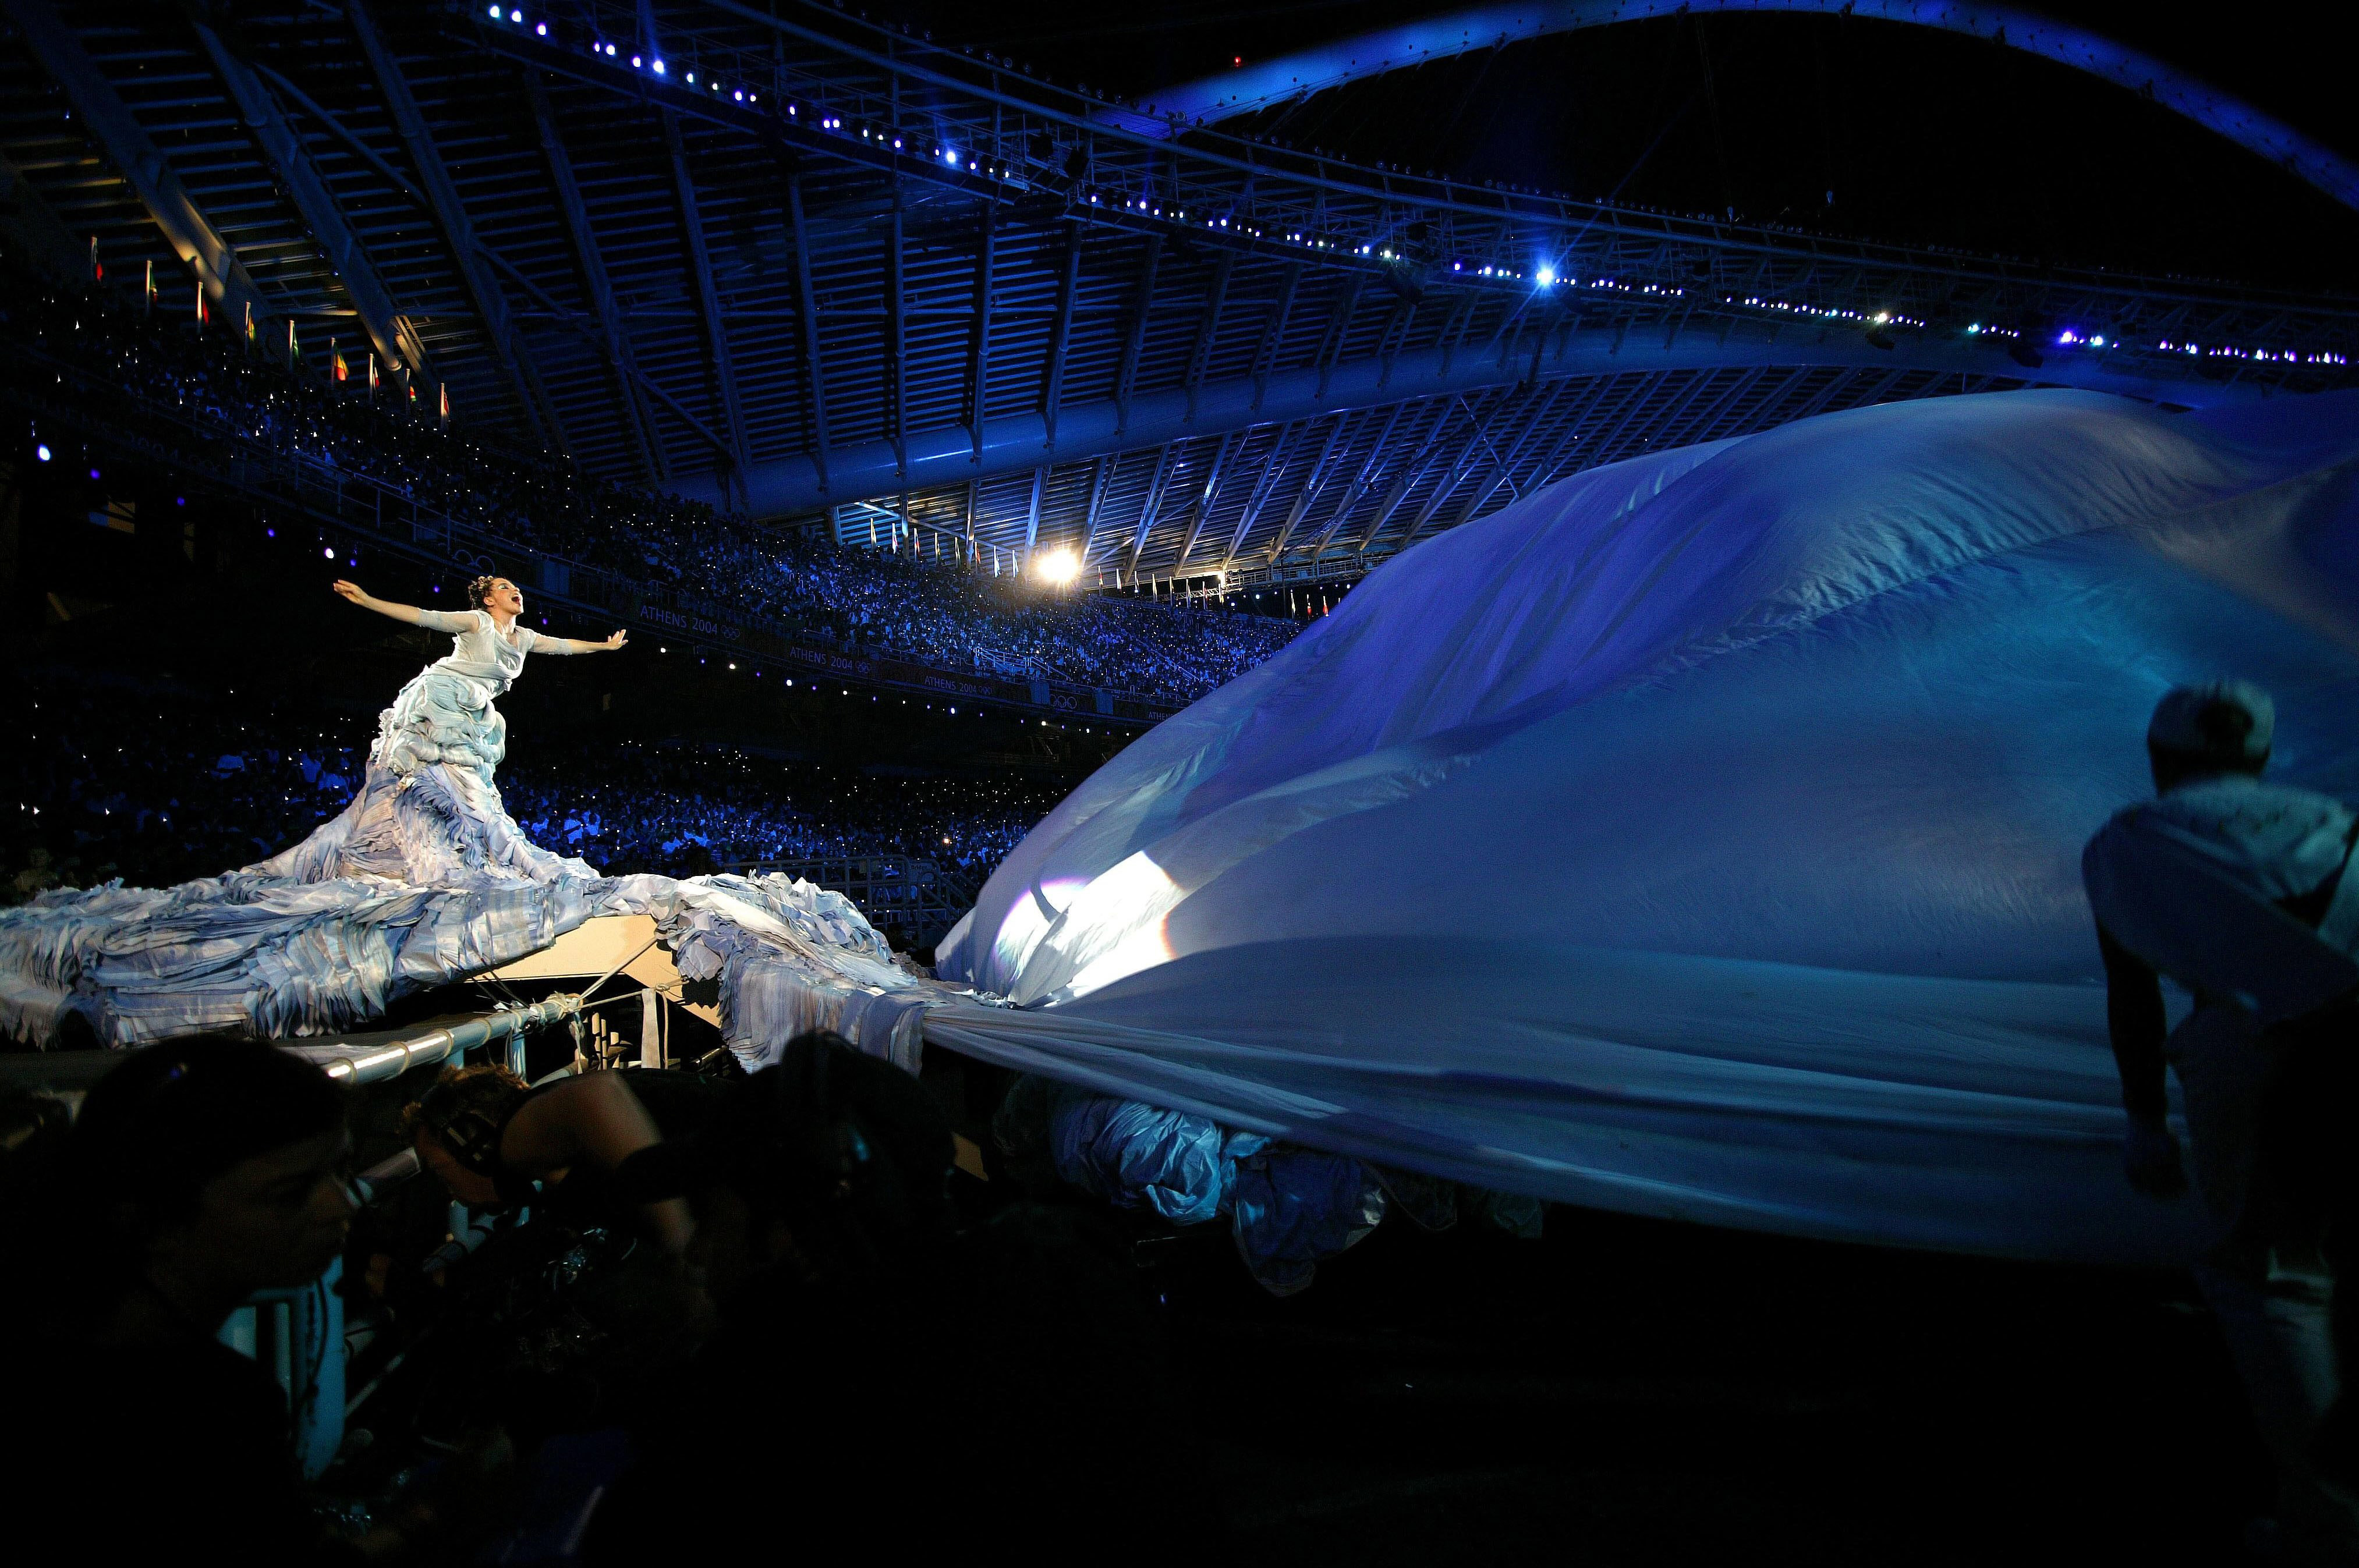 Björk performs onstage at the opening of the 2004 Athens Olympics in Athens, Greece on Aug. 13, 2004.